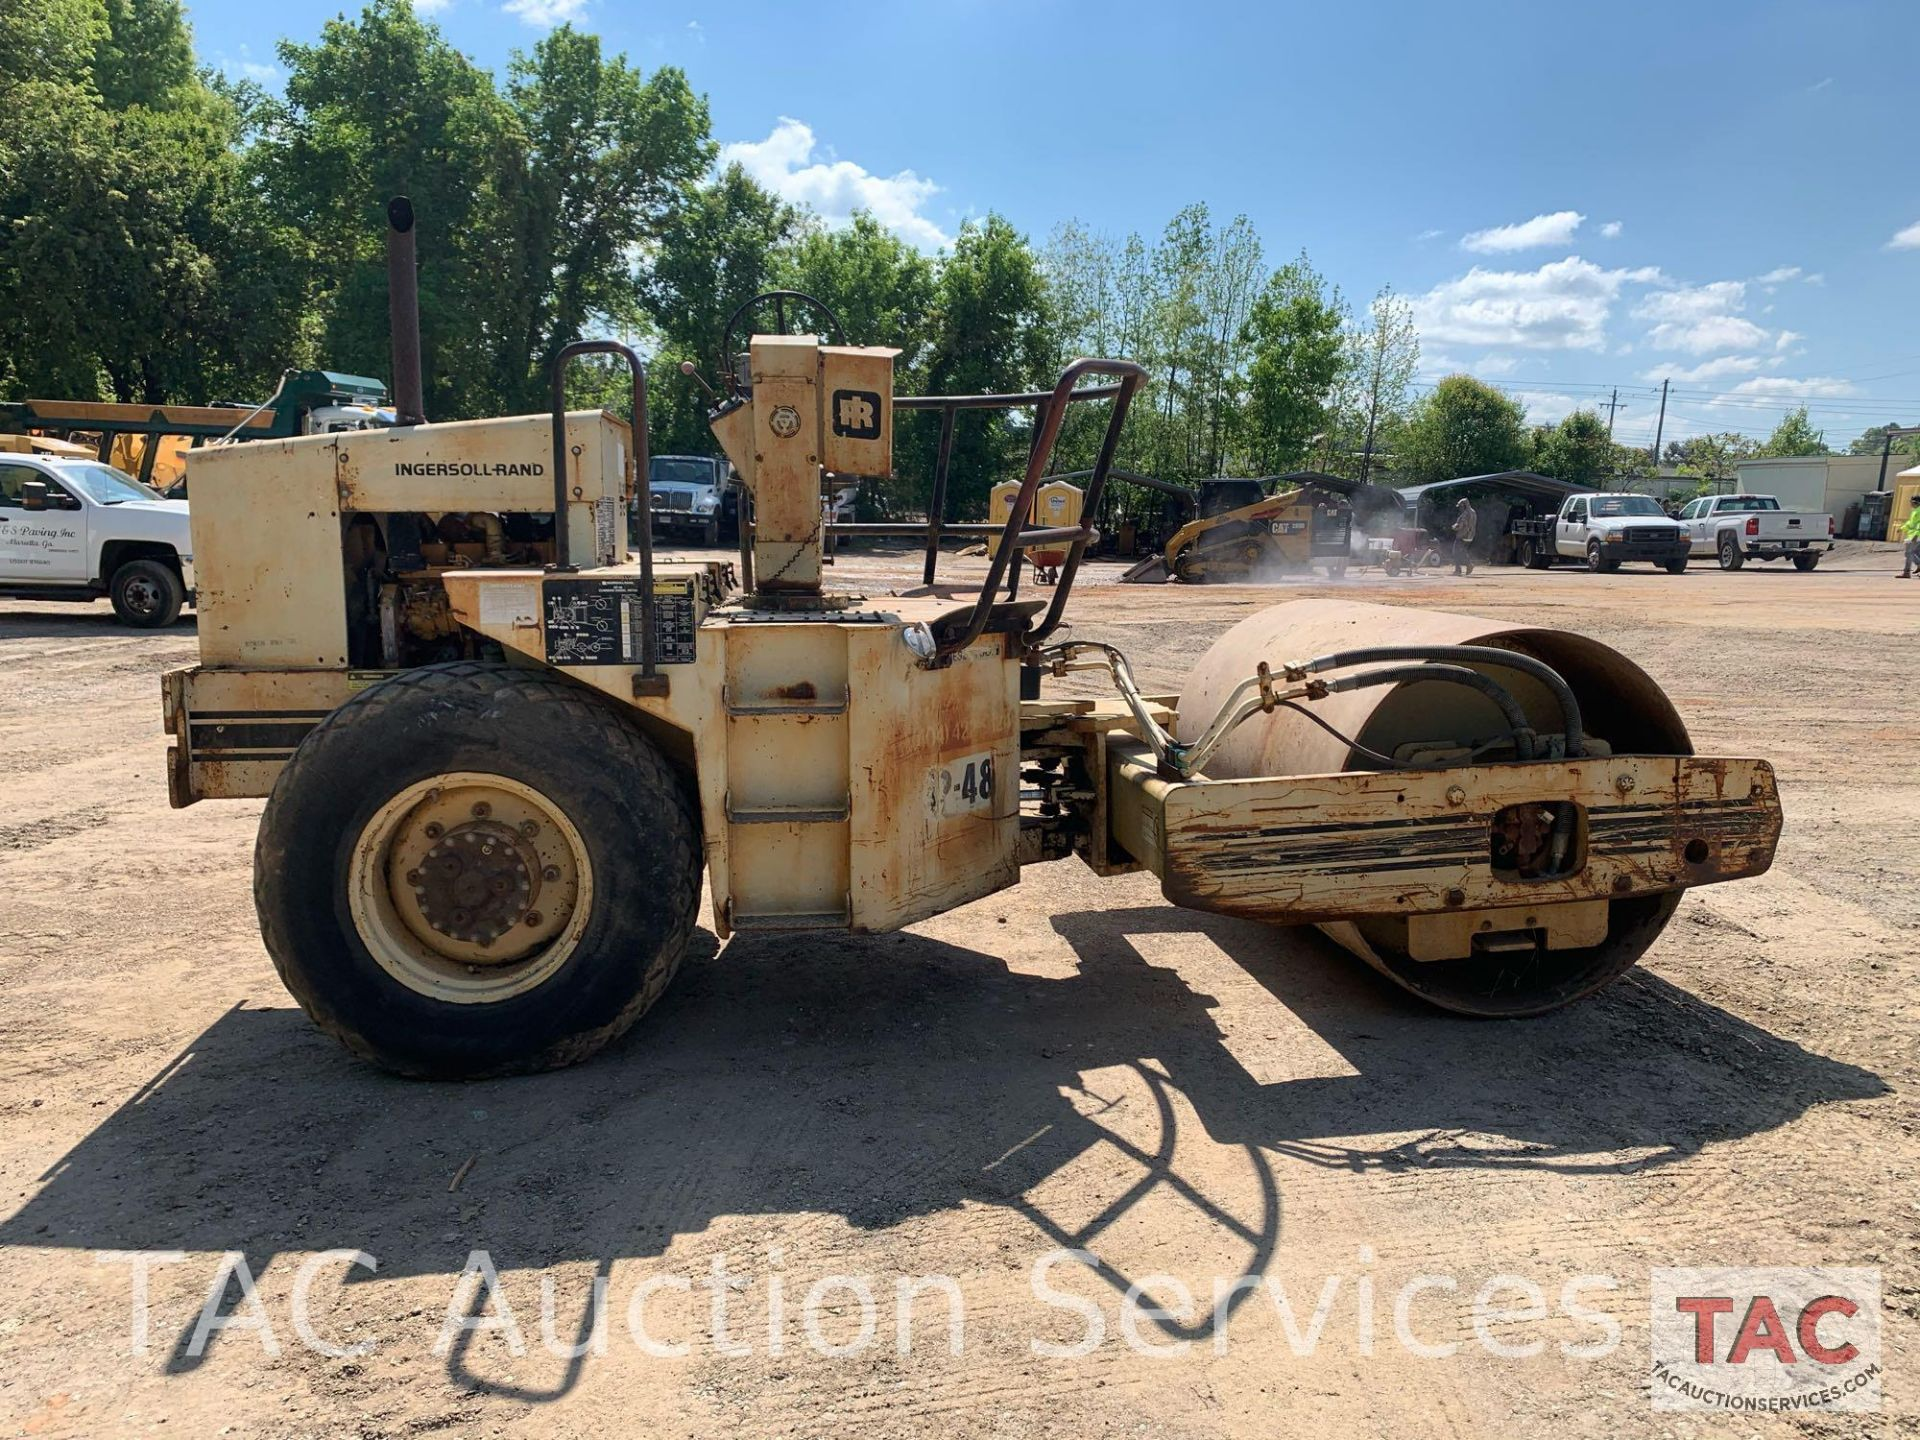 Ingersoll- Rand Vibratory Roller SP-48 - Image 8 of 36